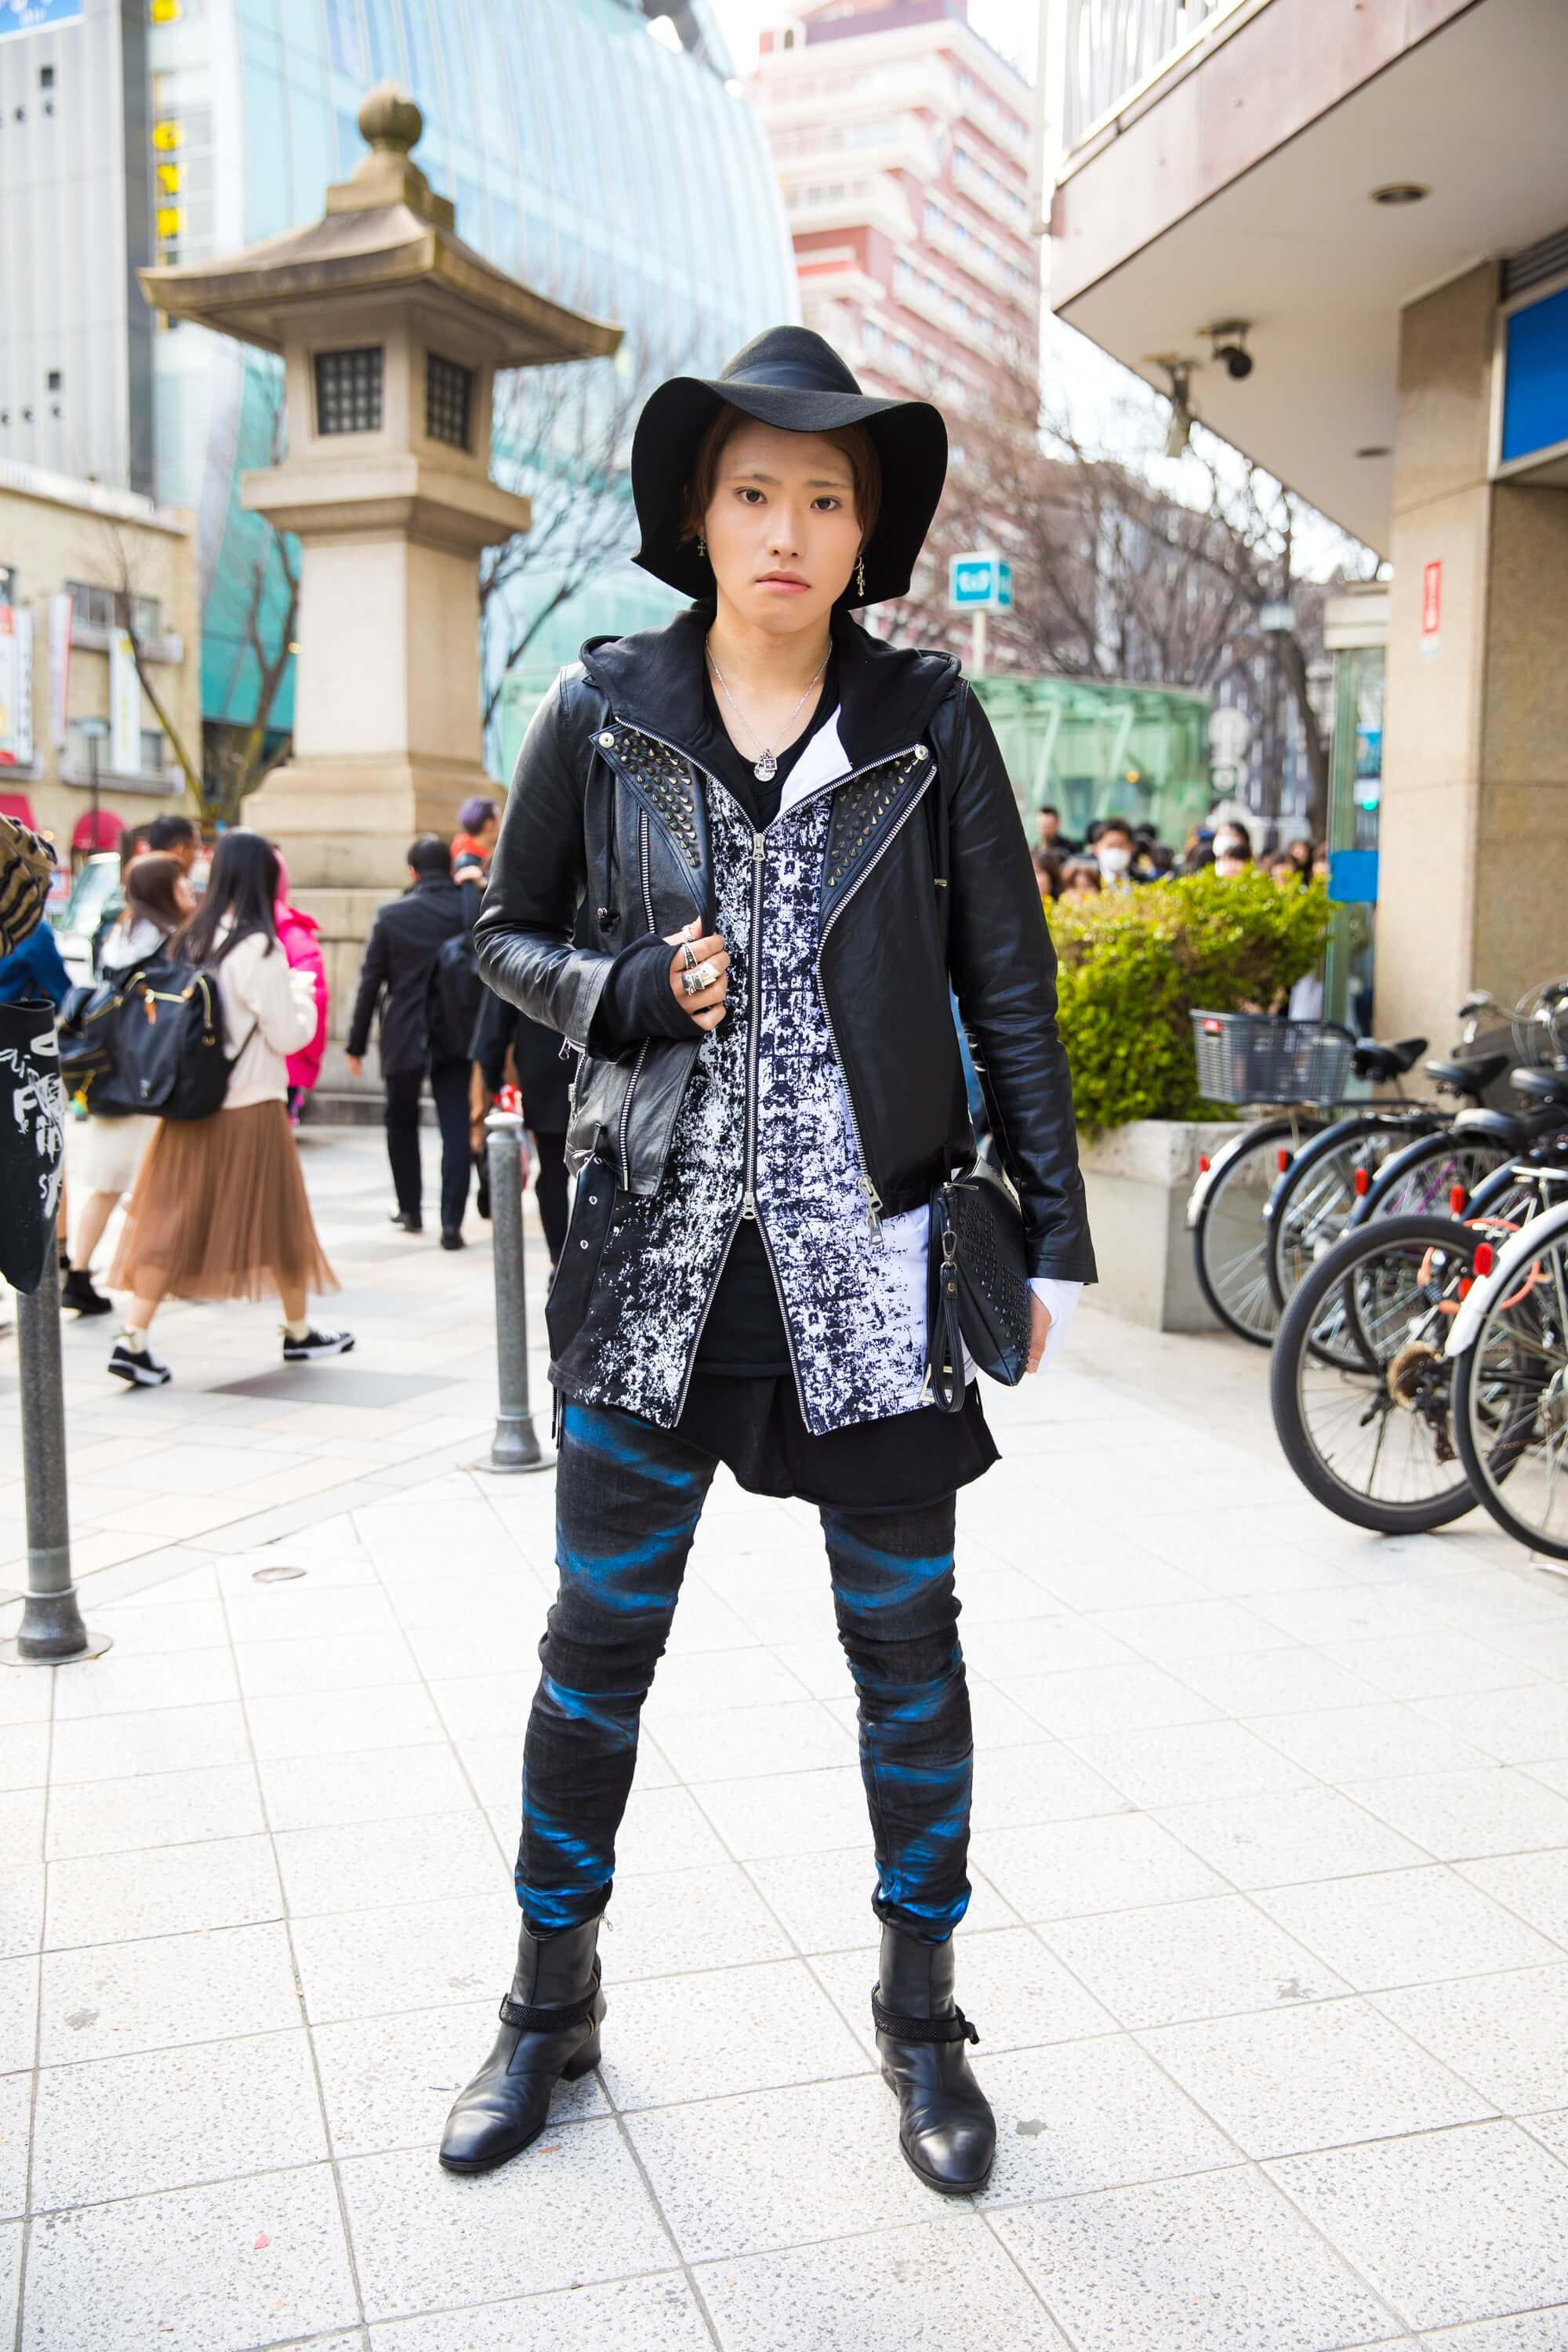 The Top 24 Fashion Street Styles From The Tokyo Fashion